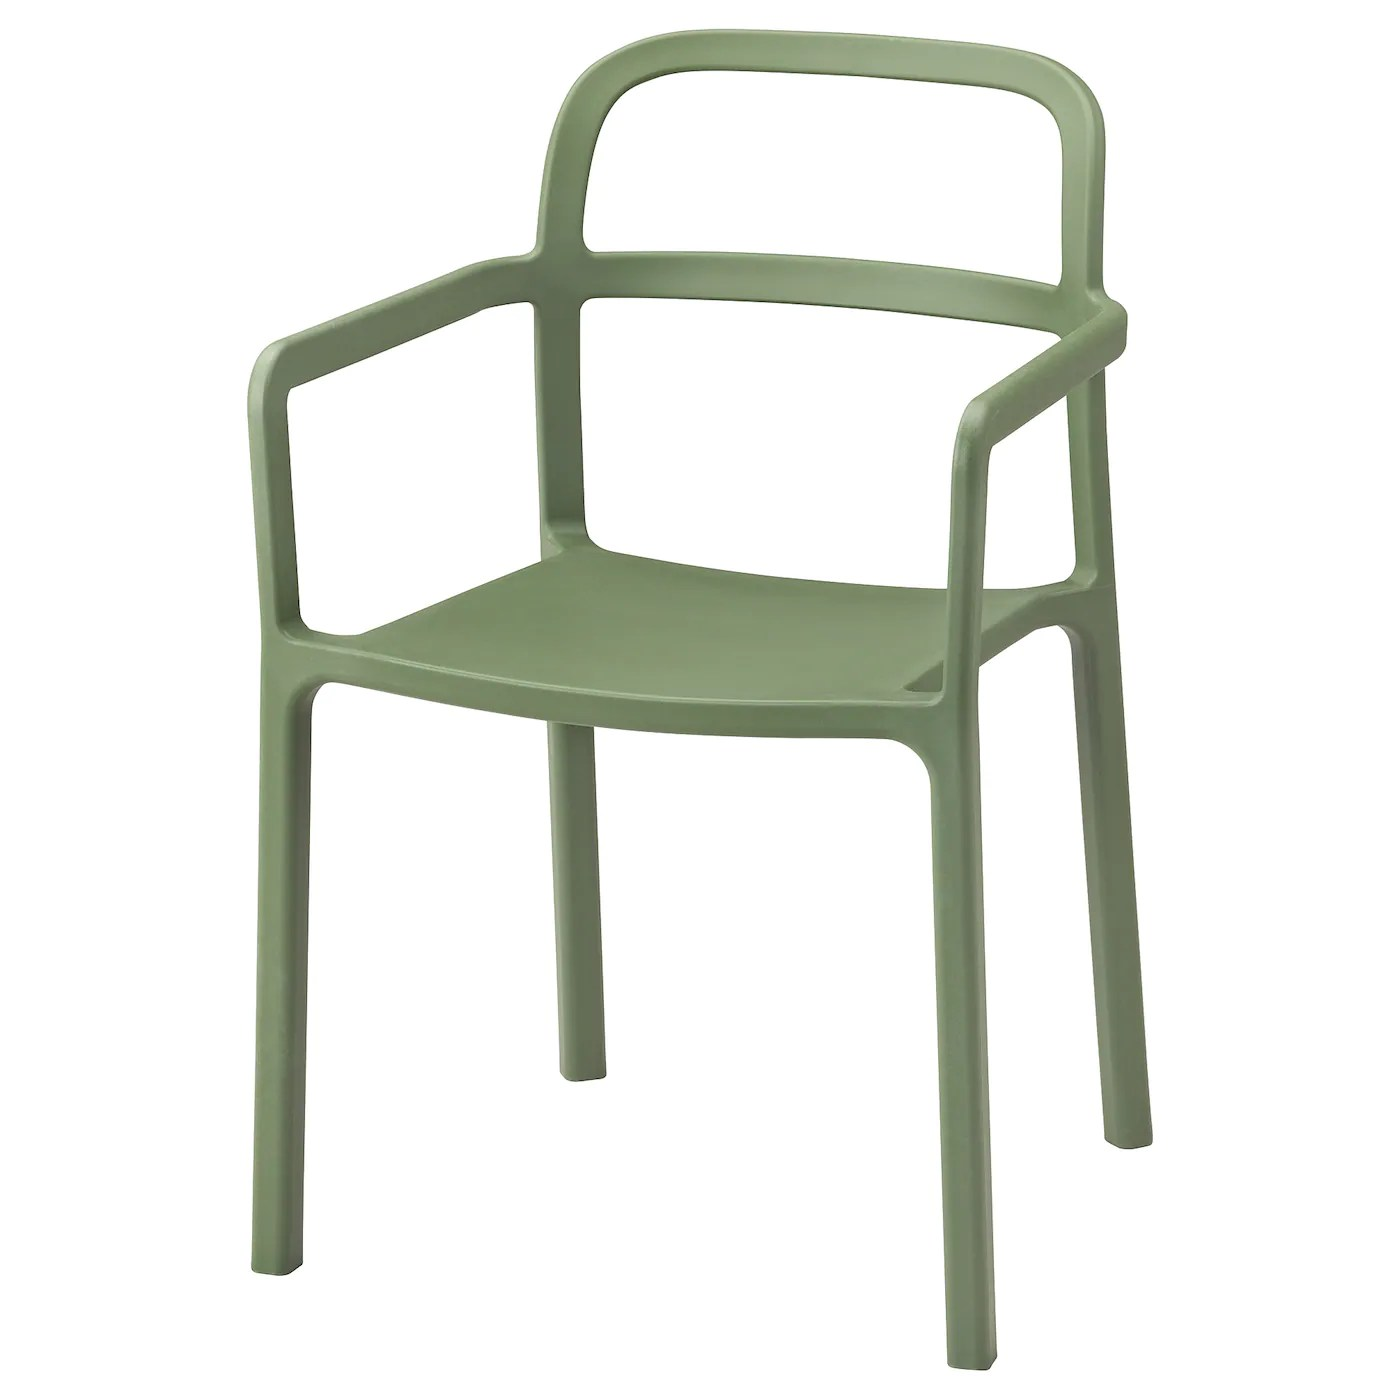 Sedie Ypperlig Ikea Ypperlig Chair With Armrests In Outdoor Green